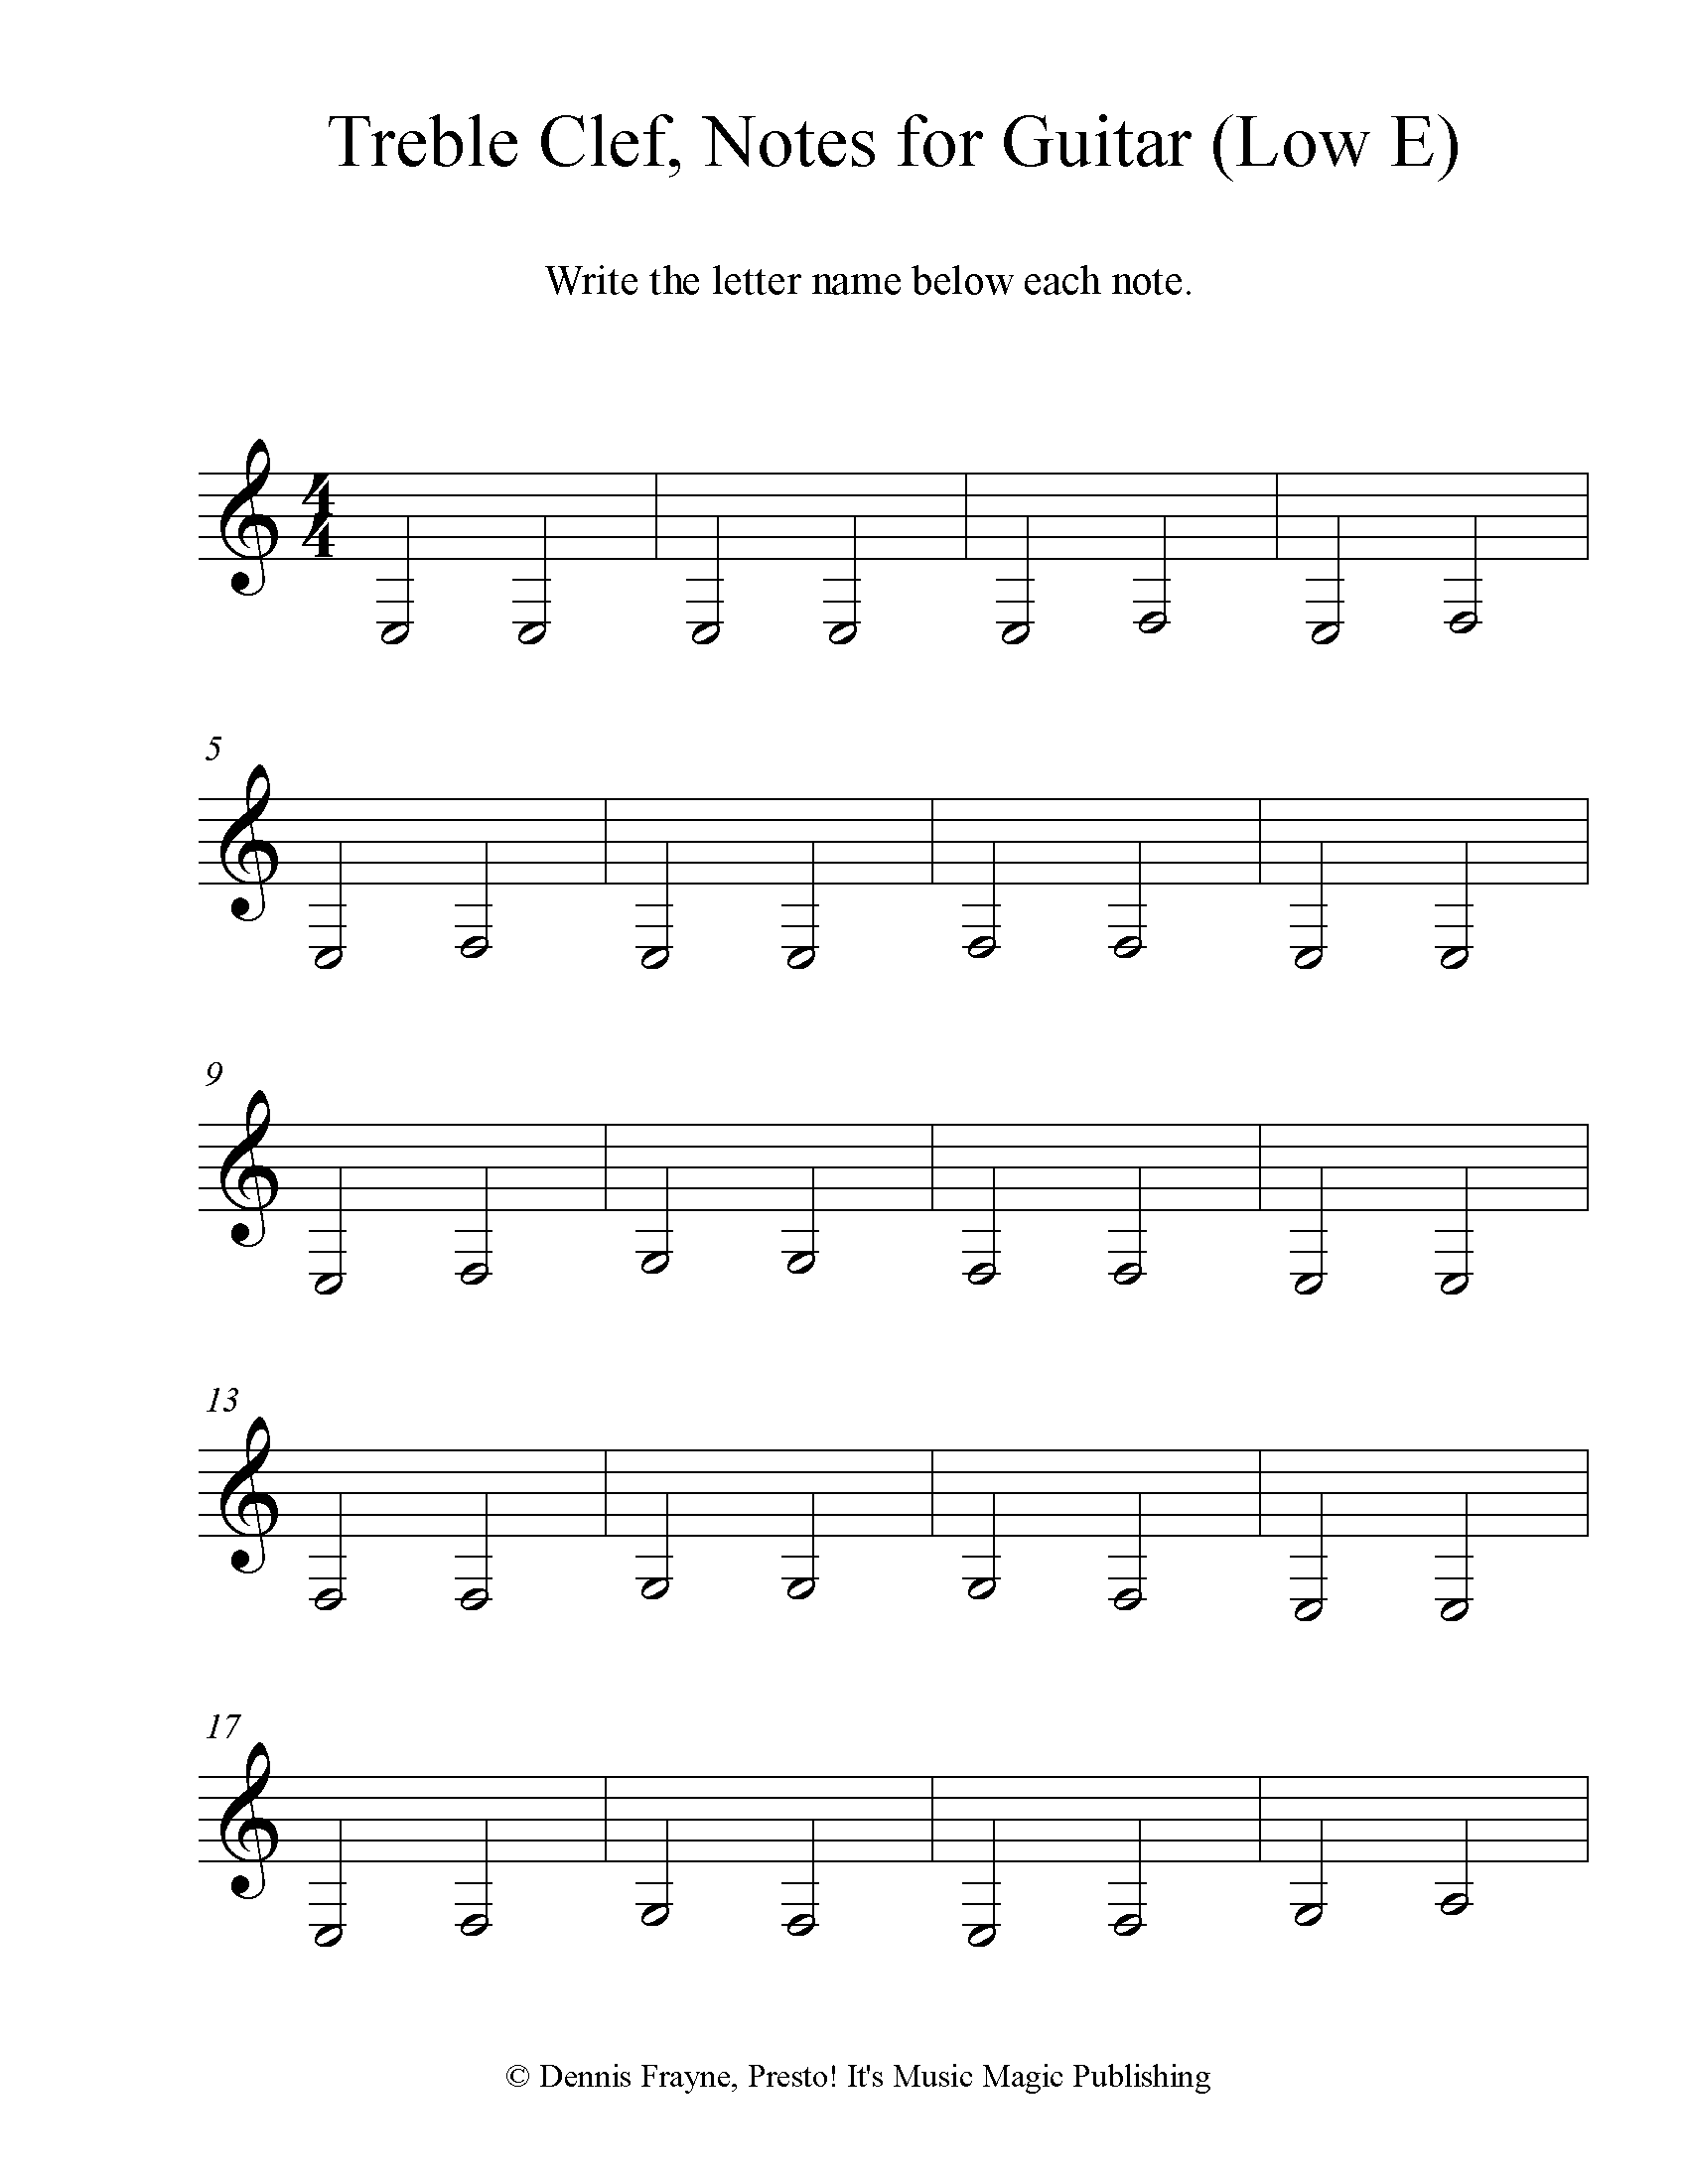 Treble Clef Note Identification for Guitar (Low E ascending) 6 pages